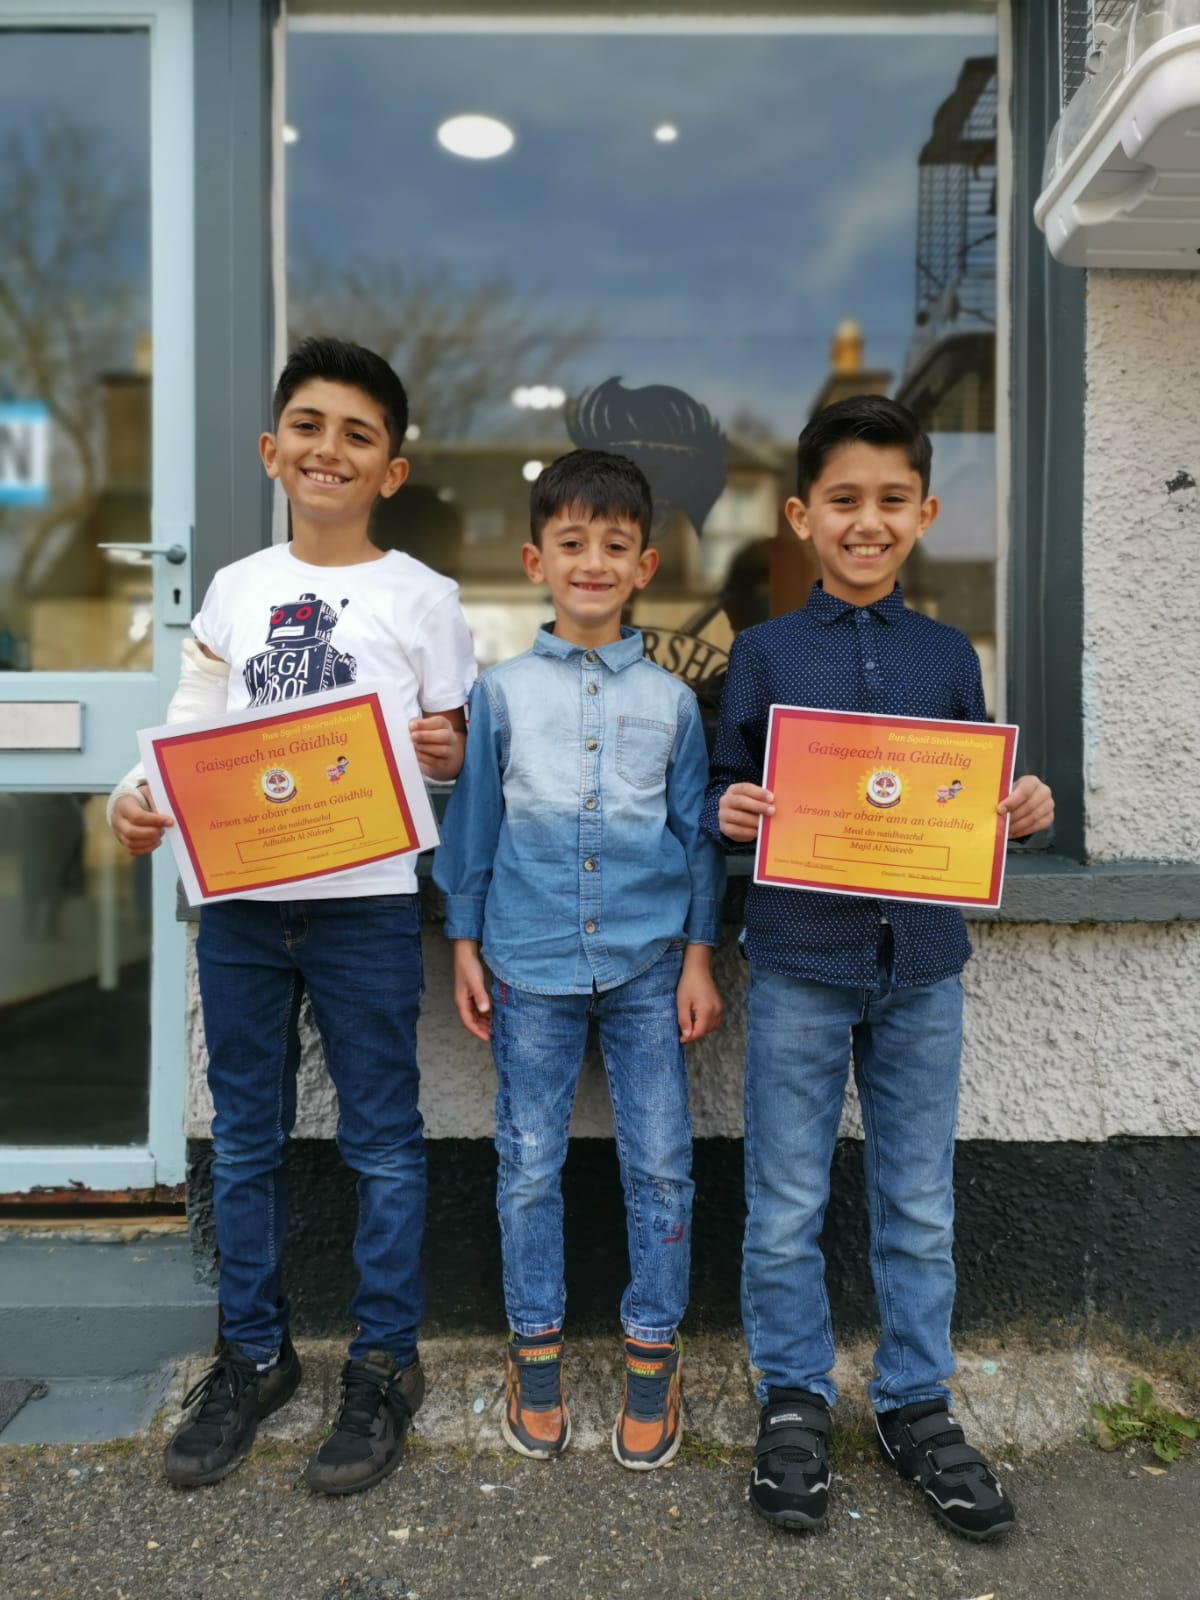 Online plaudits for Stornoway's 10-year-old Syrian Gaelic speaker | The Oban Times